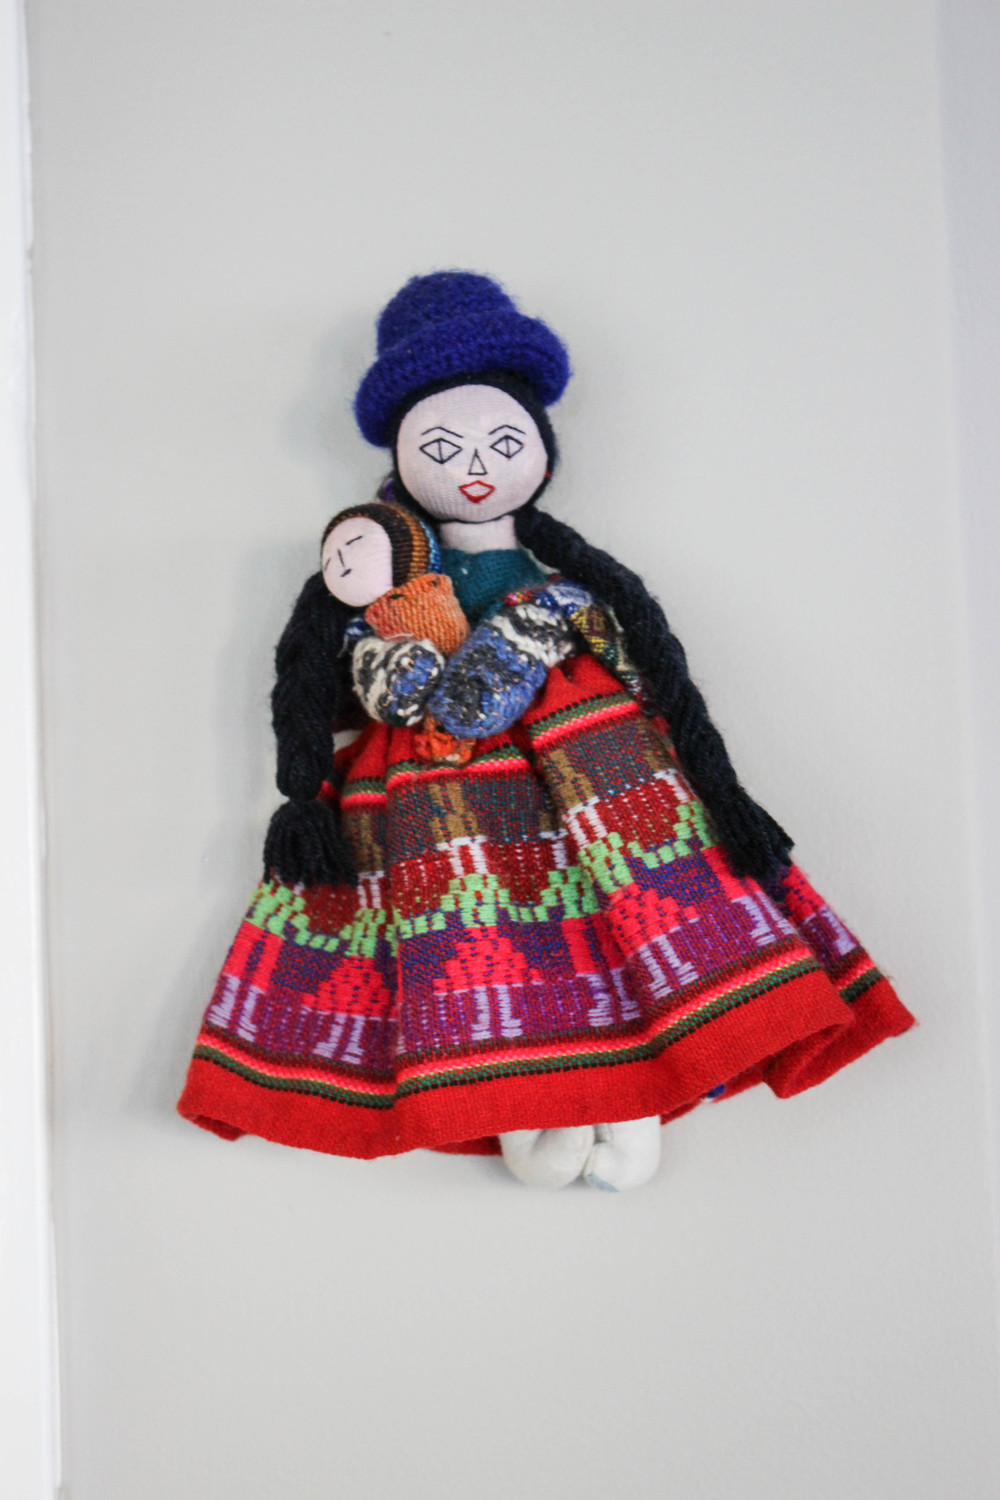 Peruvian doll as part of decor at Tumi